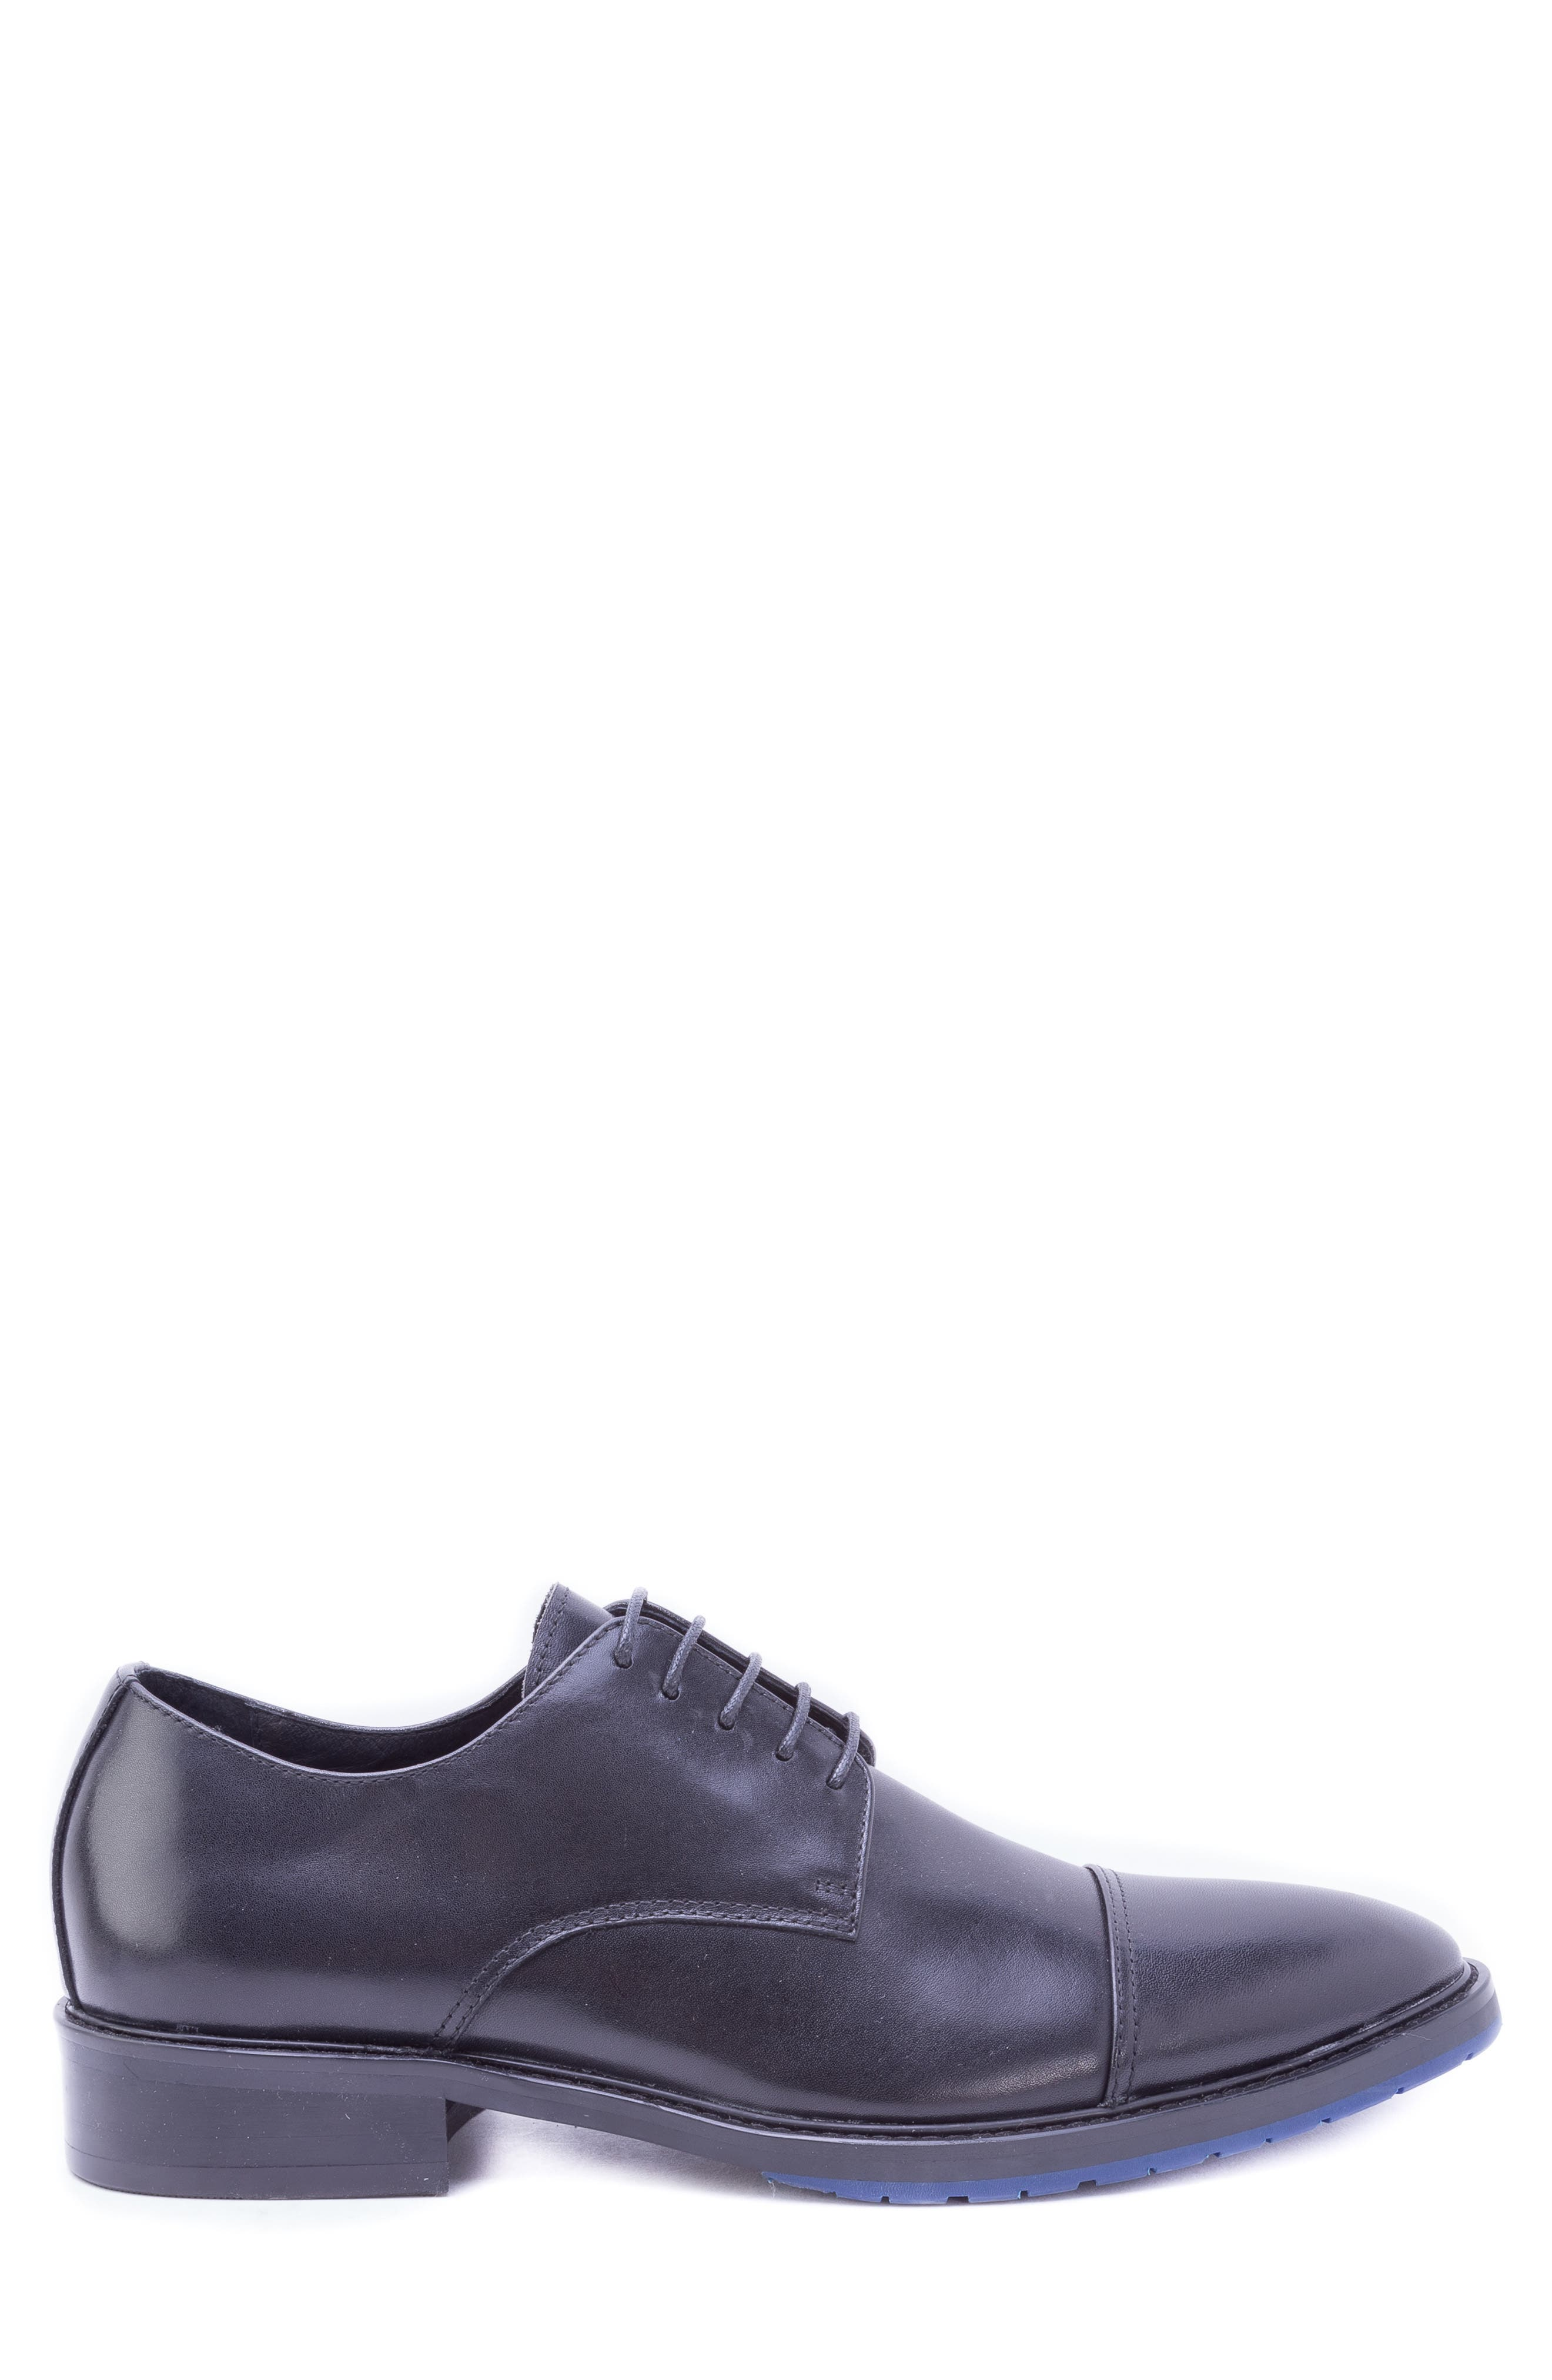 Welti Cap Toe Derby,                             Alternate thumbnail 3, color,                             BLACK LEATHER